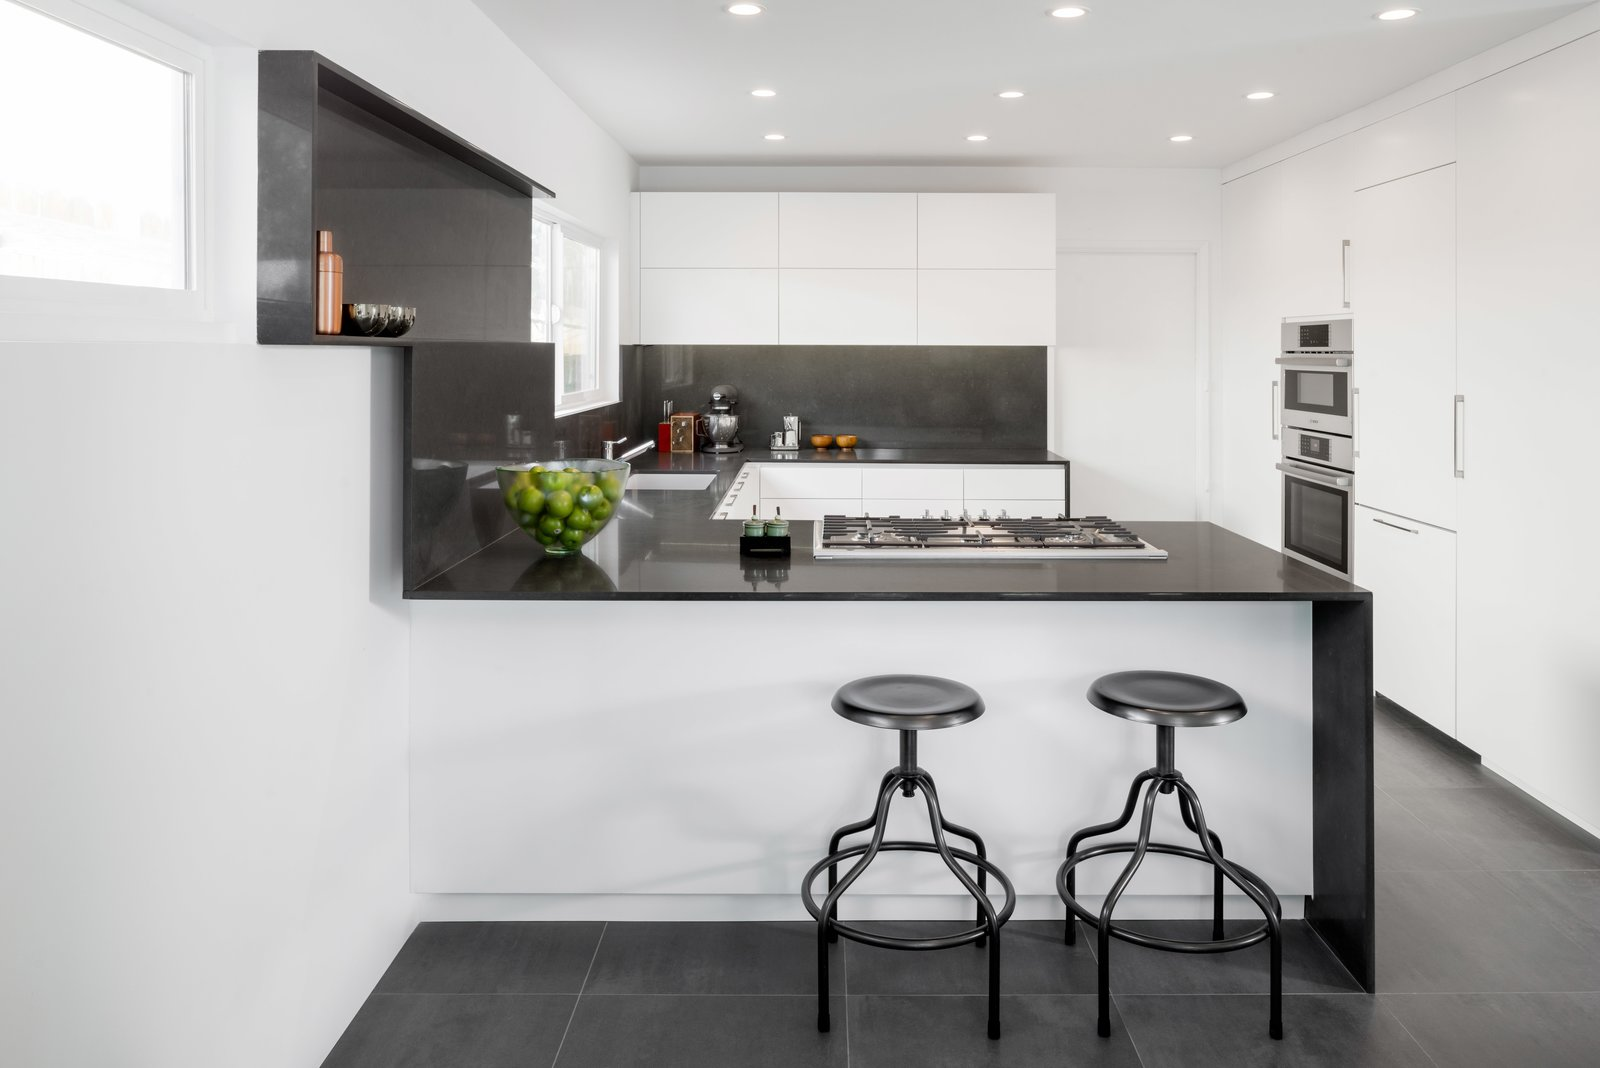 Photo 1 of 5 in Designed to Disappear: The Case For the Minimal Kitchen